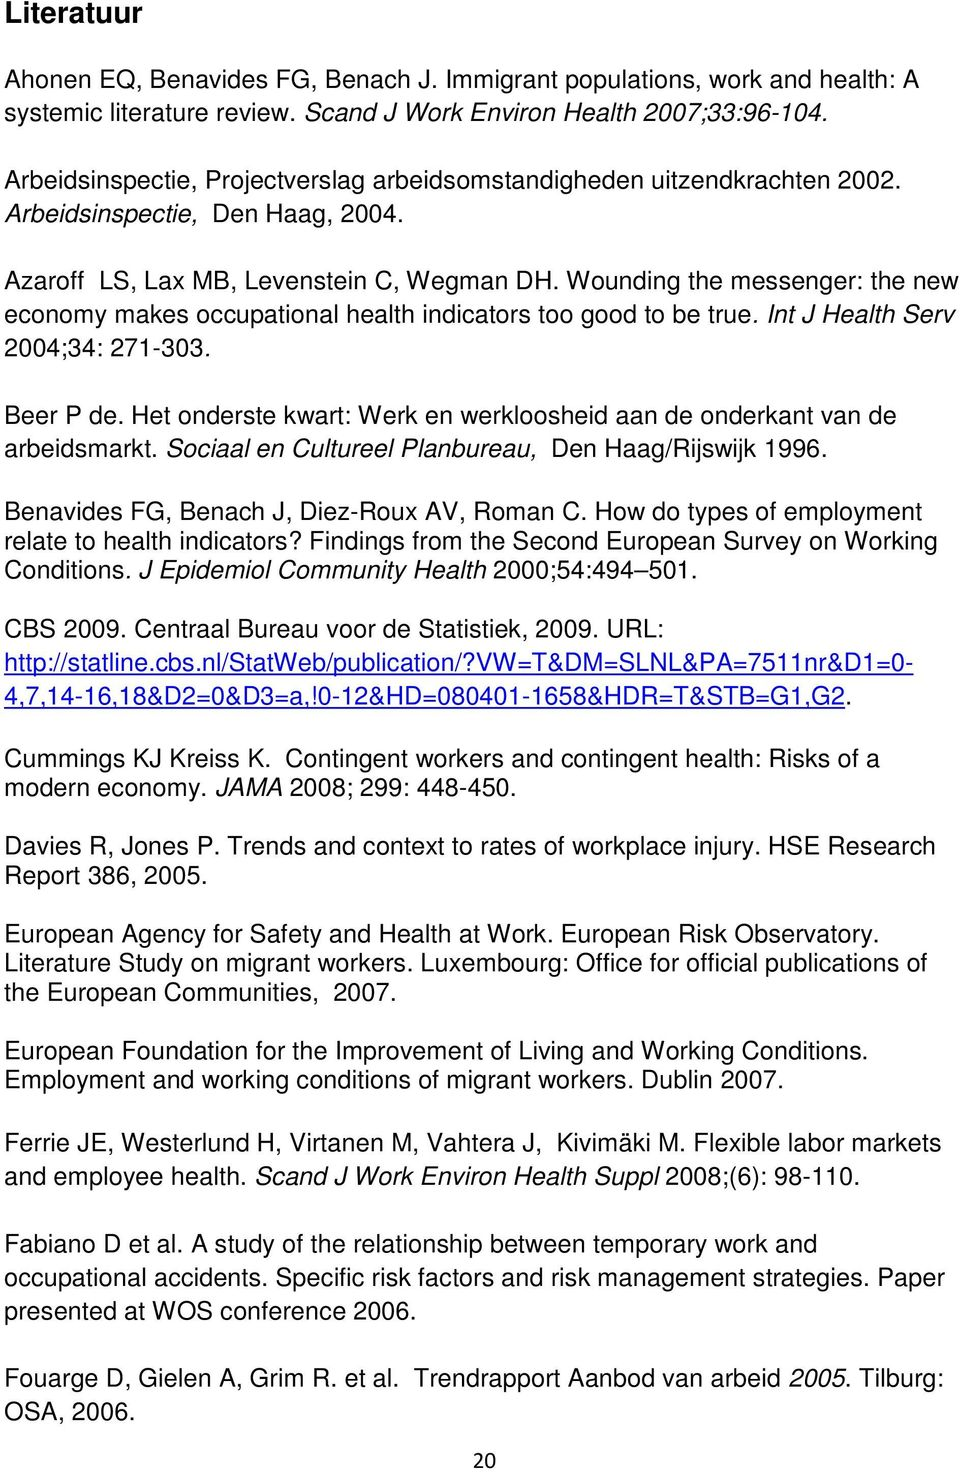 Wounding the messenger: the new economy makes occupational health indicators too good to be true. Int J Health Serv 2004;34: 271-303. Beer P de.